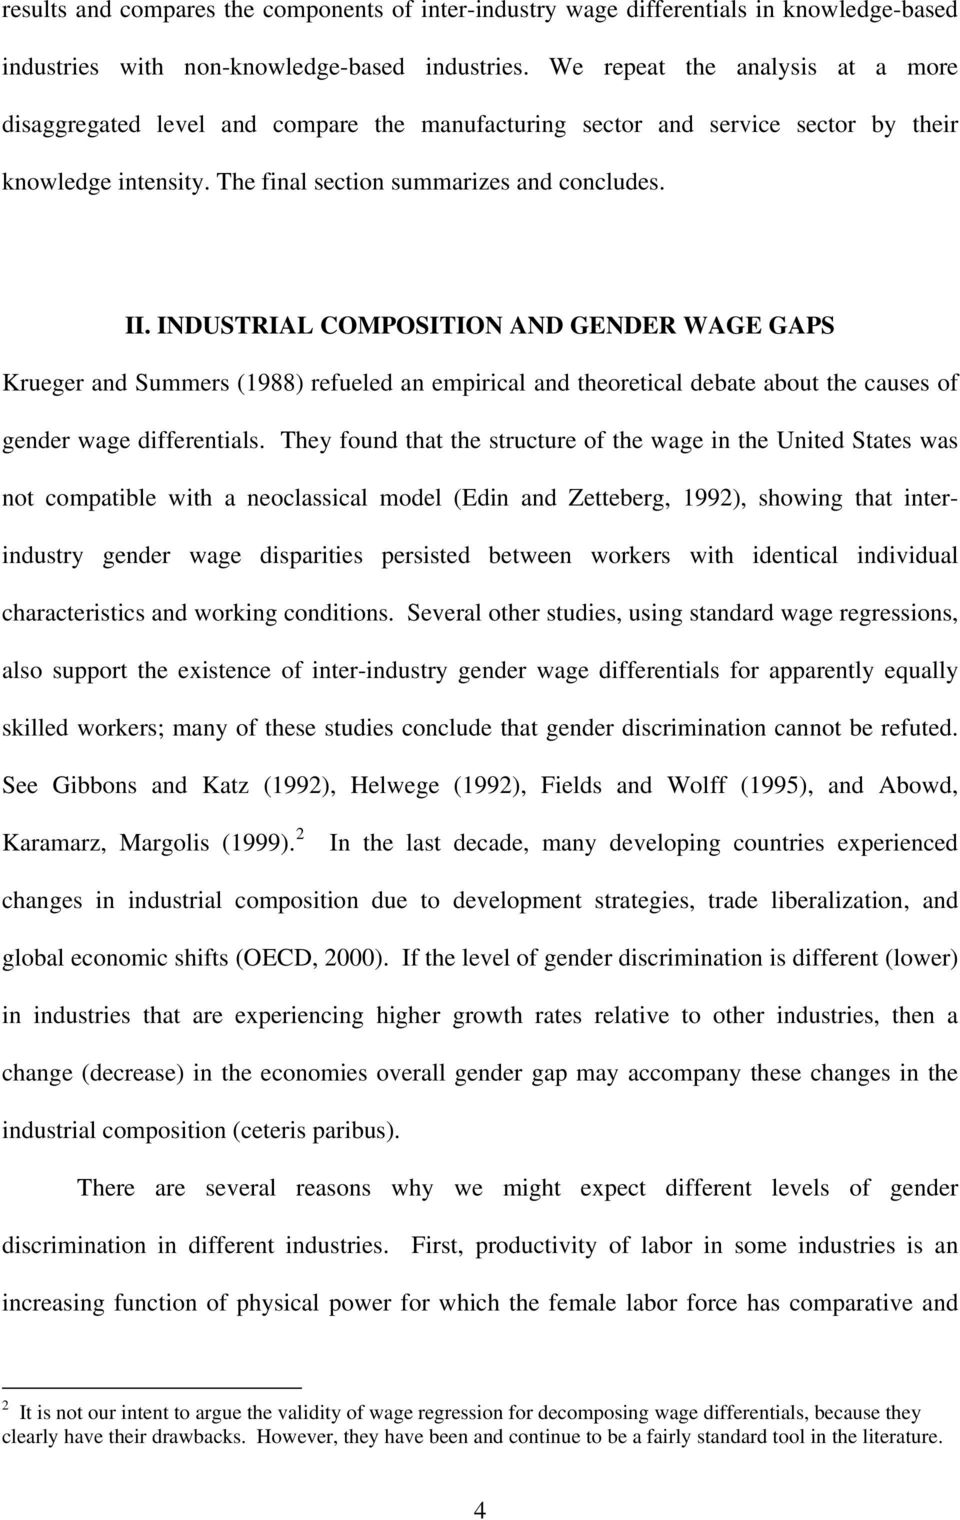 INDUSTRIAL COMPOSITION AND GENDER WAGE GAPS Krueger and Suers (1988) reueled an epirical and theoretical debate about the causes o gender wage dierentials.